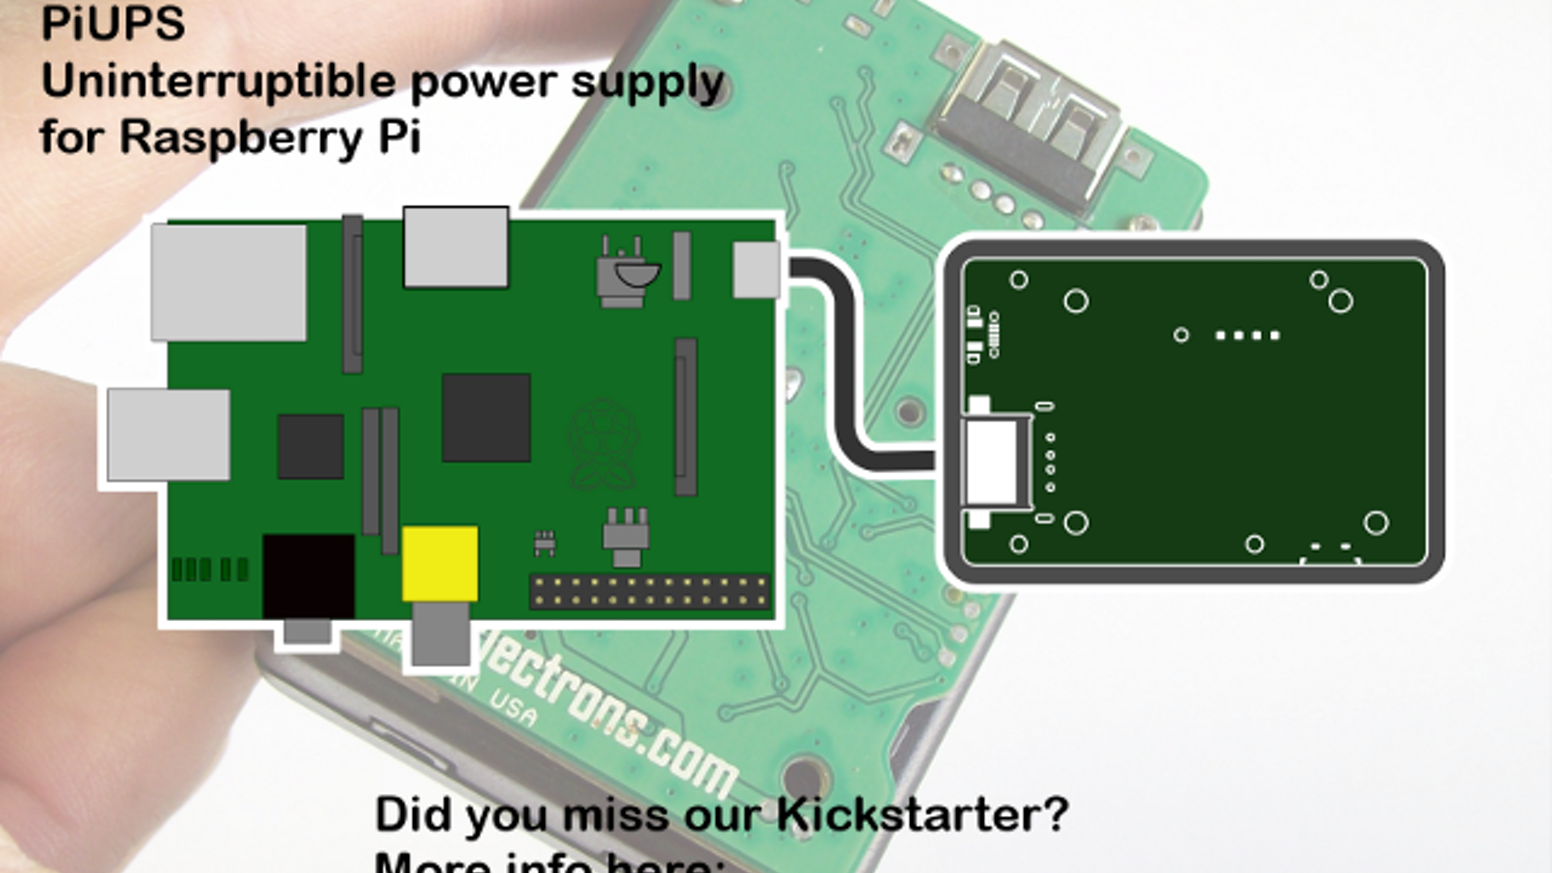 PiUPS is Uninterruptible Power Supply & Portable Power for Raspberry Pi or Arduino. PiUPS runs on 3 AA rechargeable batteries.